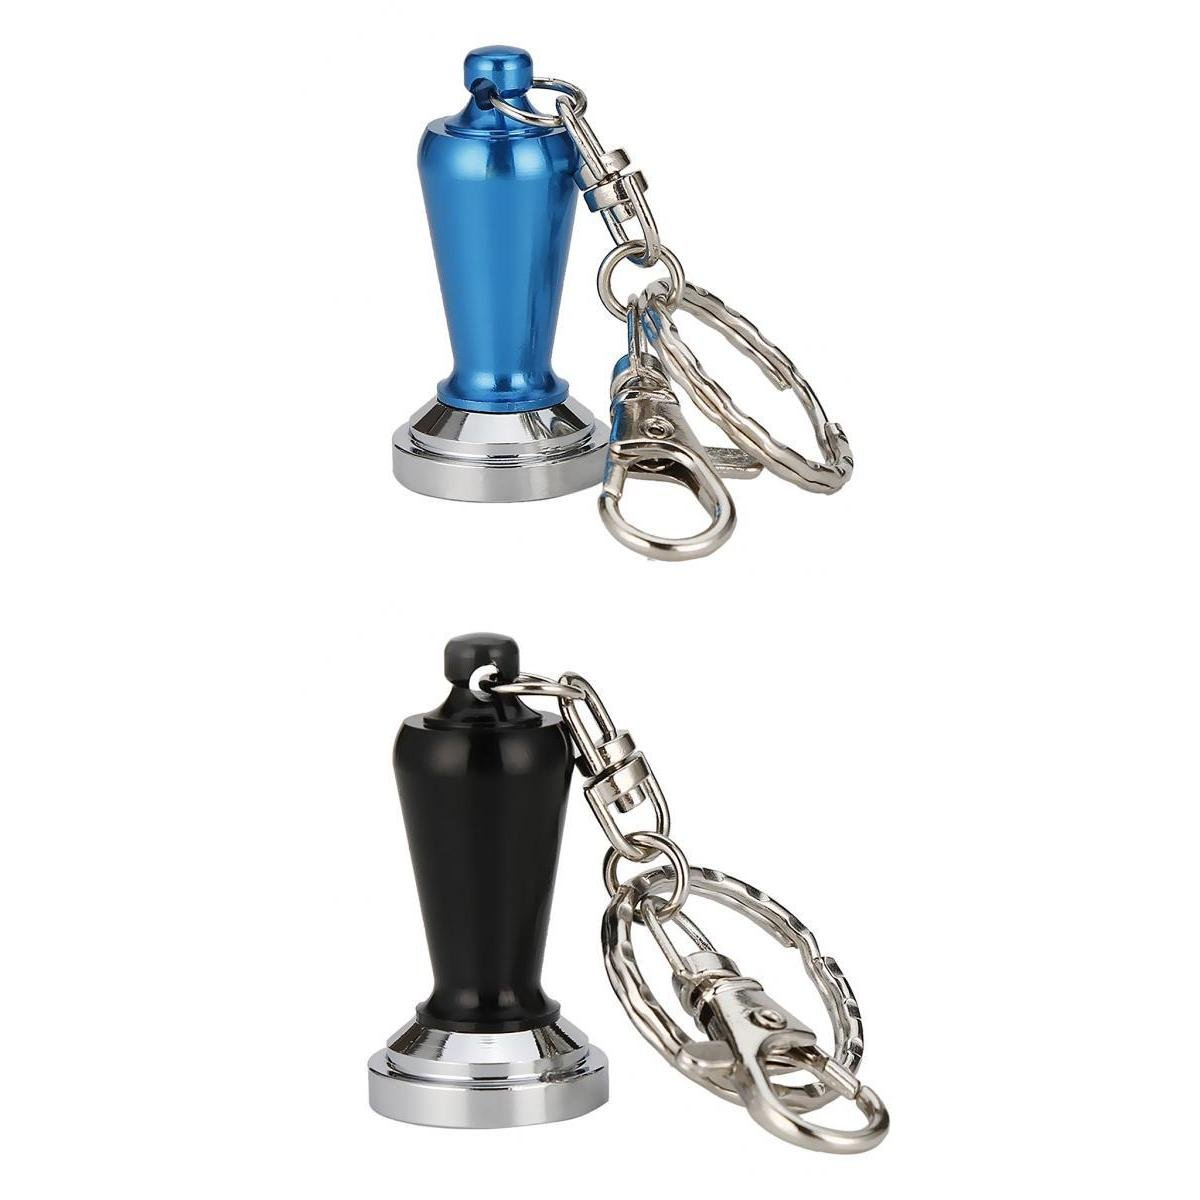 MagiDeal Stainless Steel Coffee Tamper Keyring Keychain Coffee Accessory Black Blue